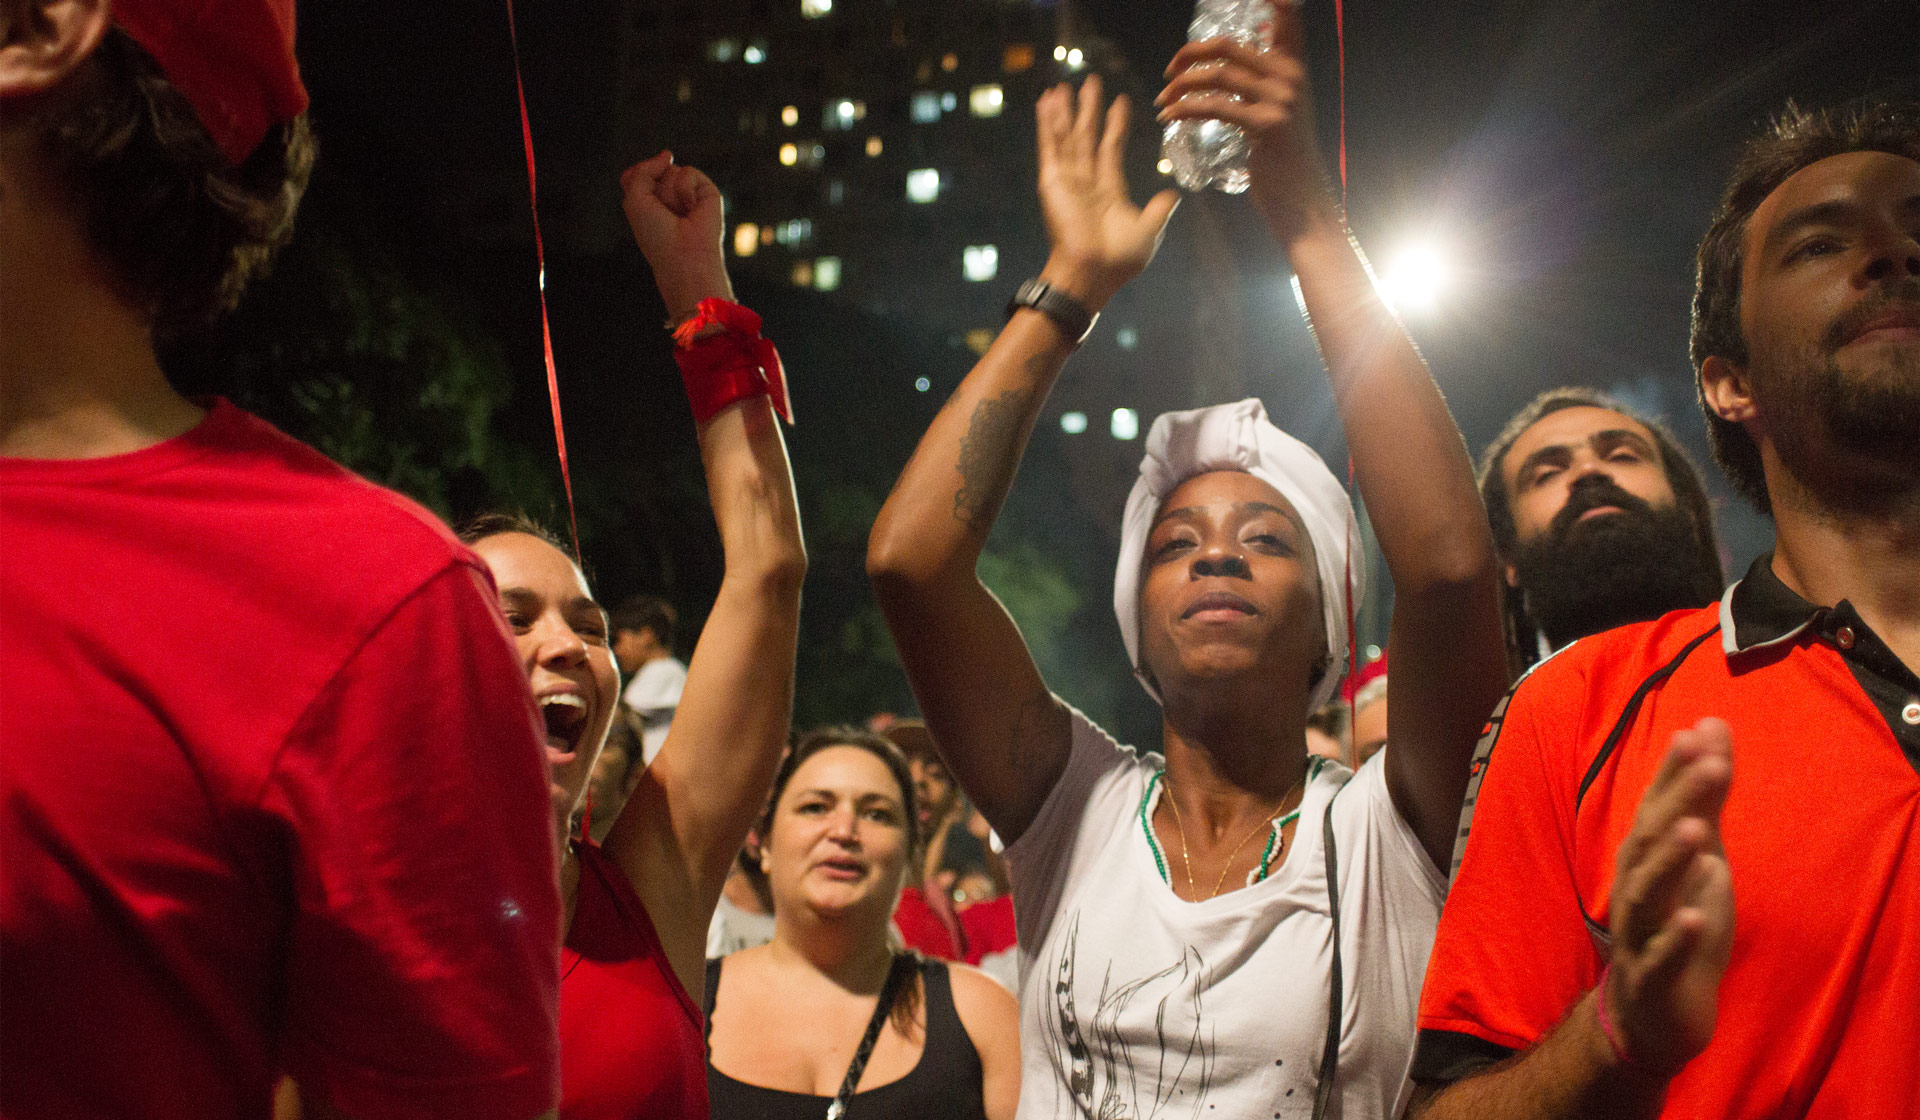 Pro-government protestors in São Paulo, earlier in the year